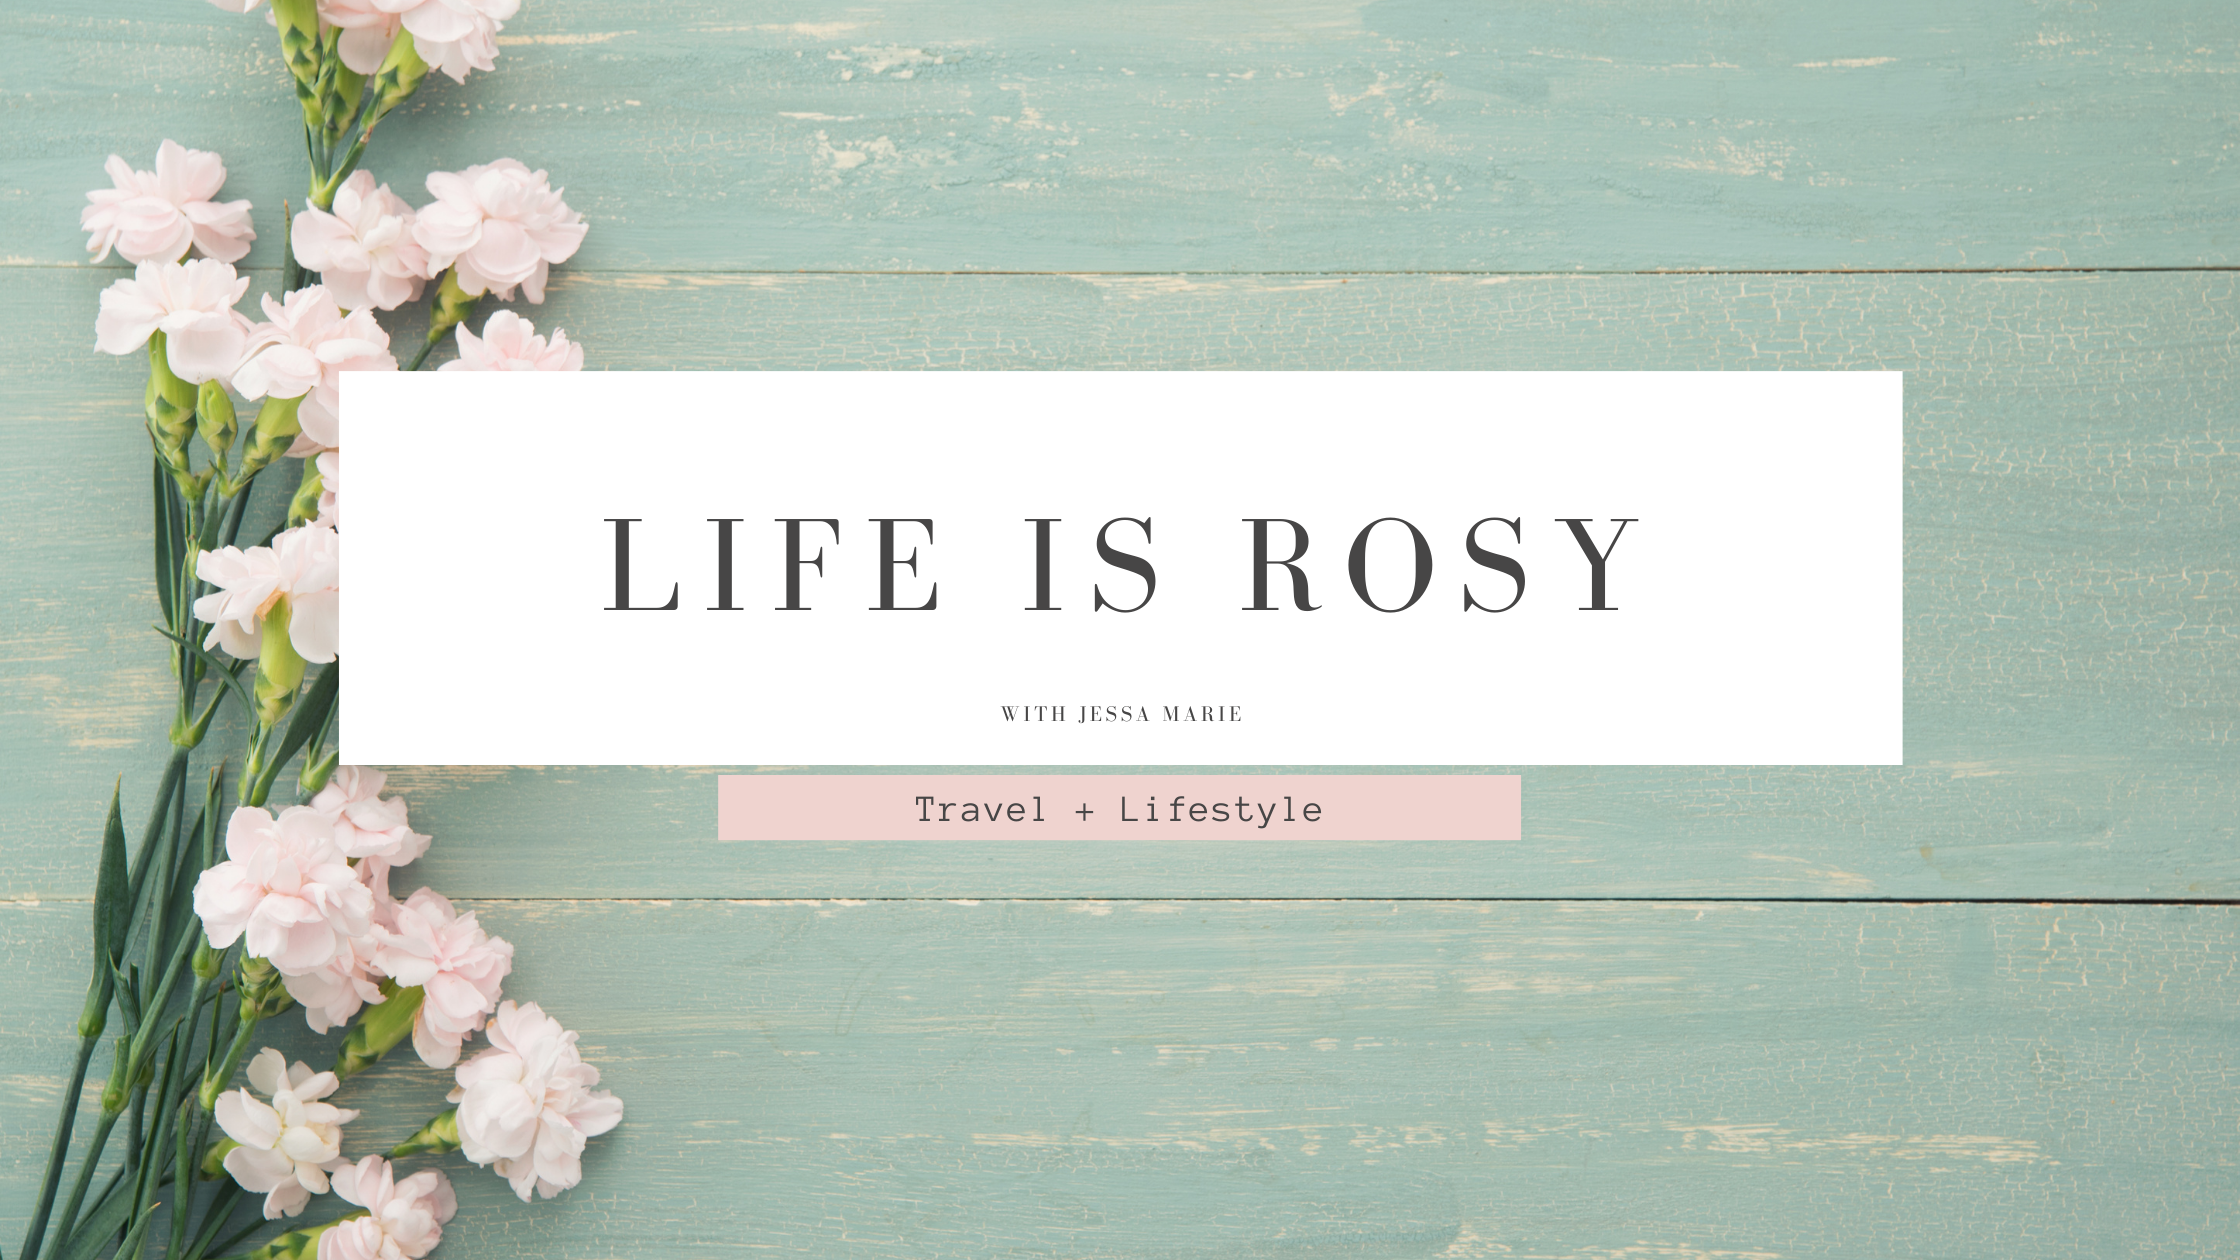 Life is Rosy